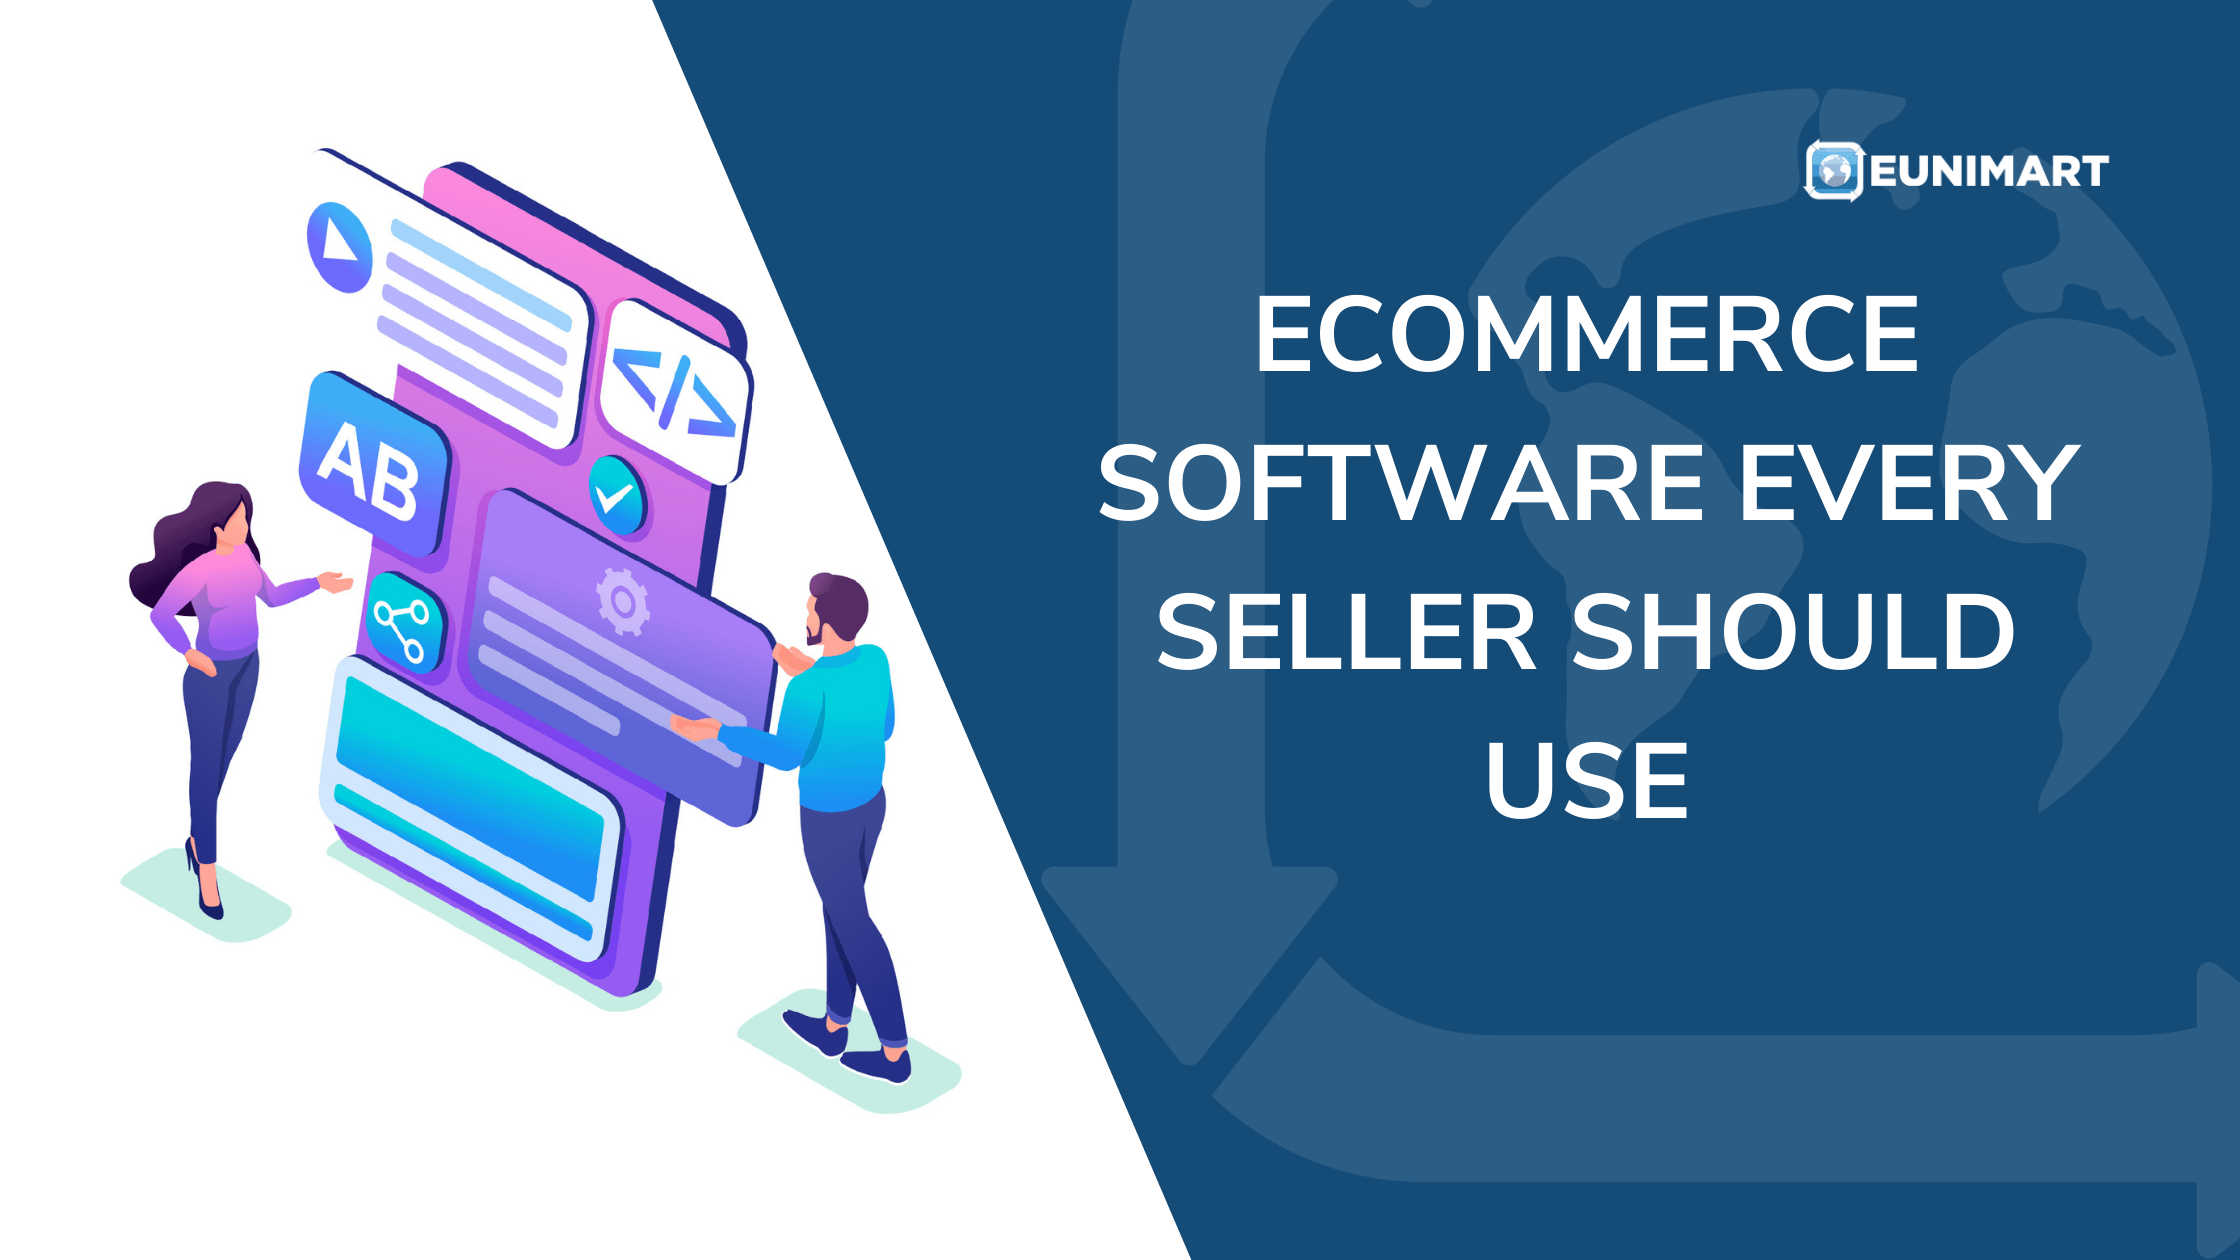 Ecommerce Software Every Seller Should Use